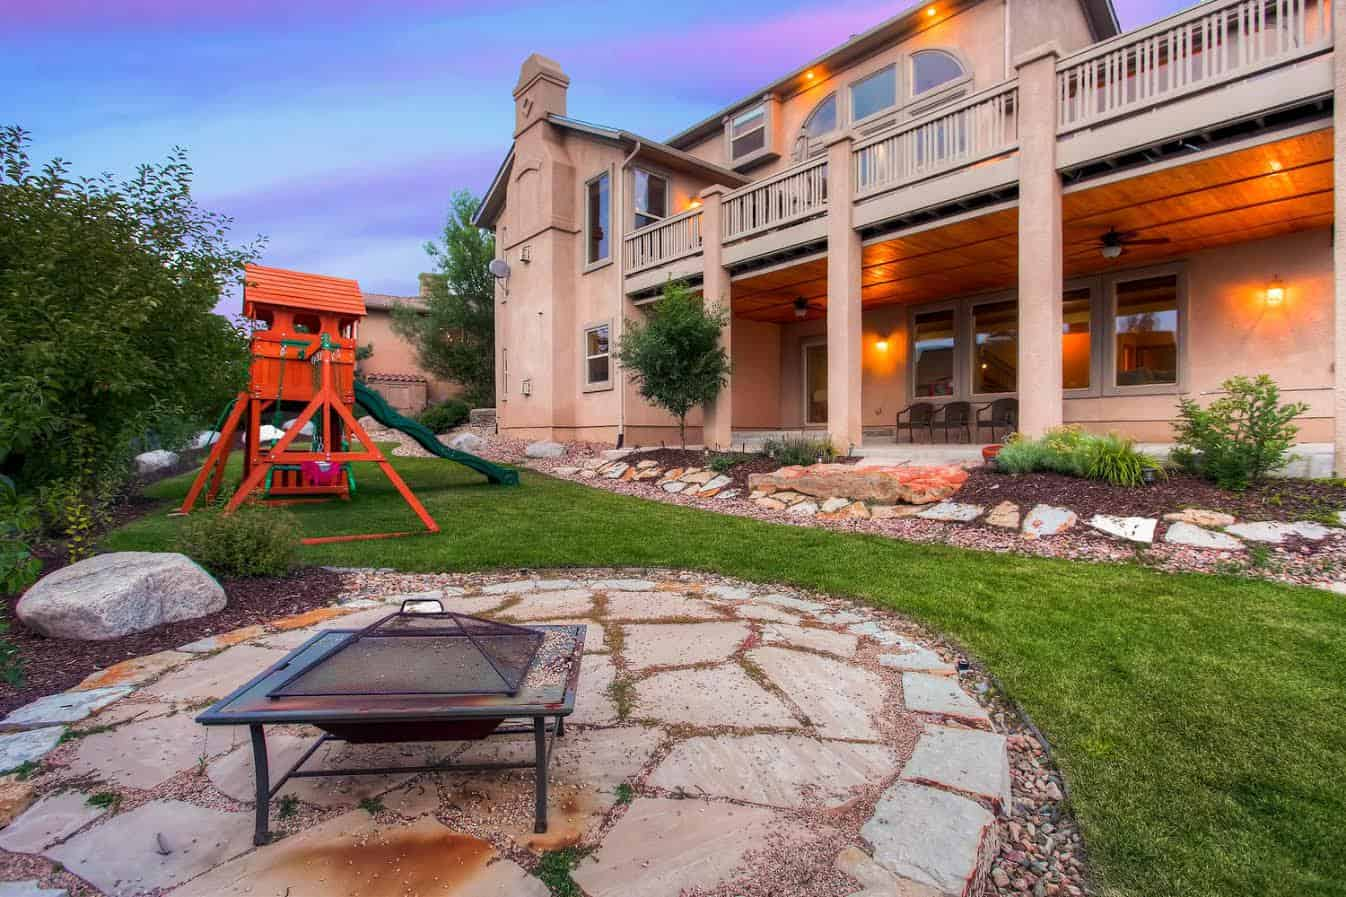 Backyard with Covered Patio, Deck and Playset